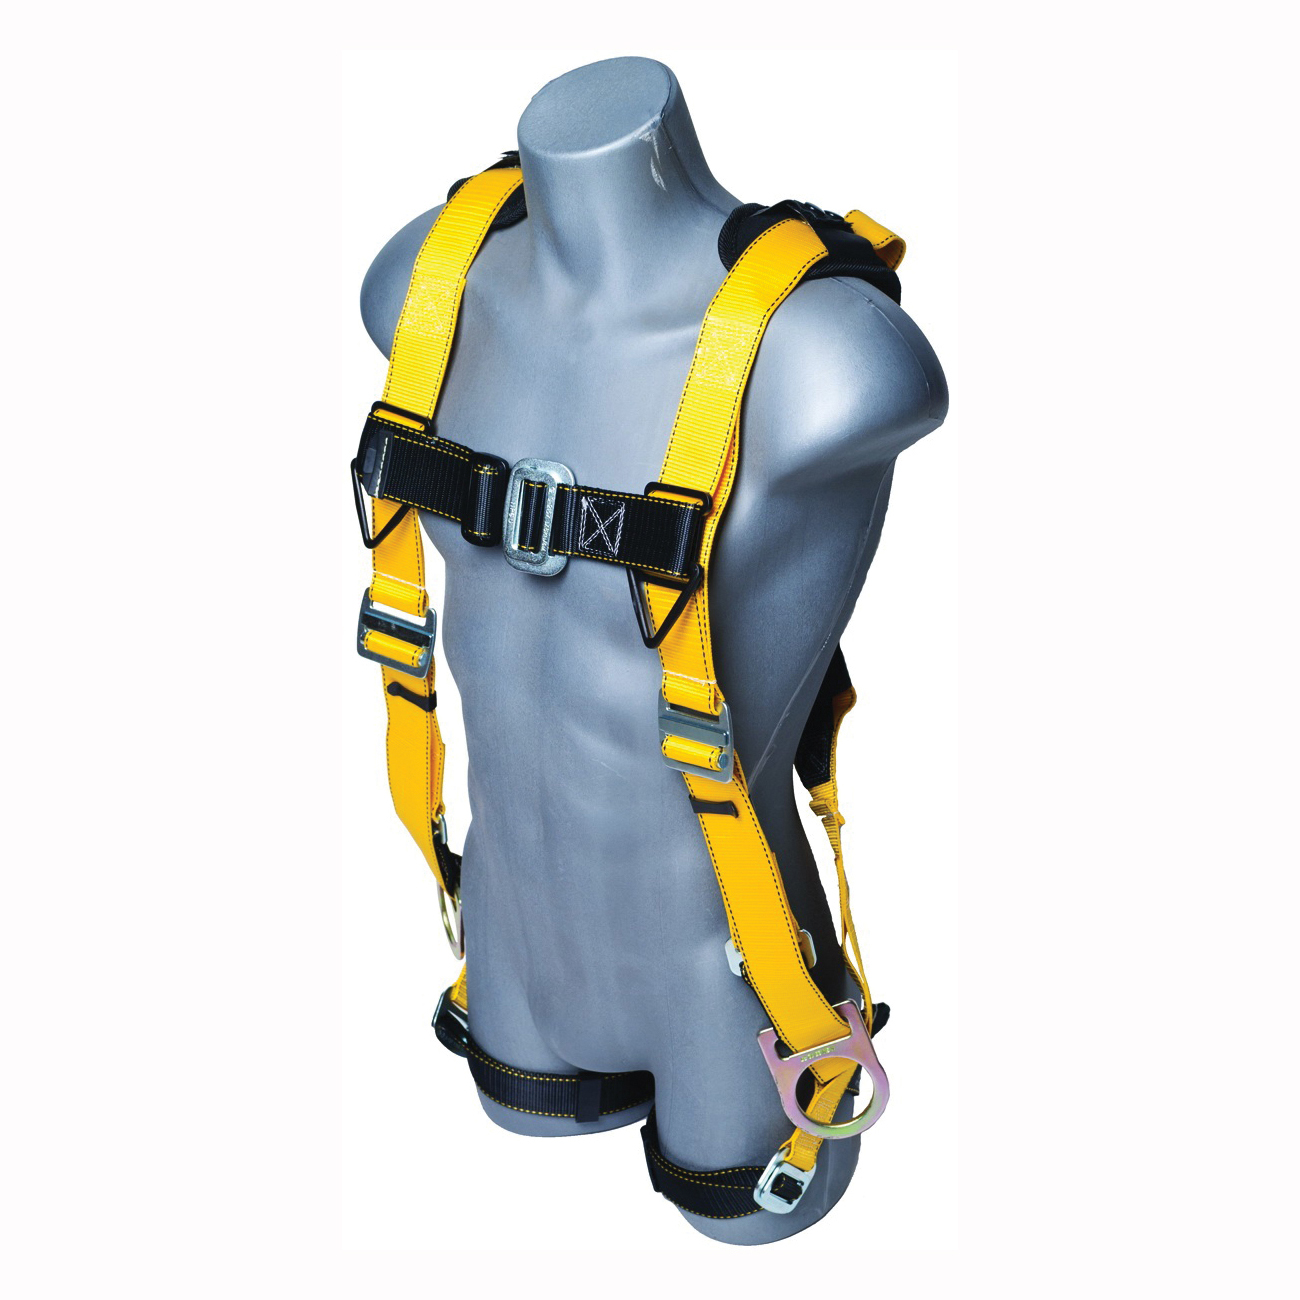 Picture of Qualcraft 11163 HUV Harness with Side D-Rings, XL/2XL, 180 to 360 lb, Yellow